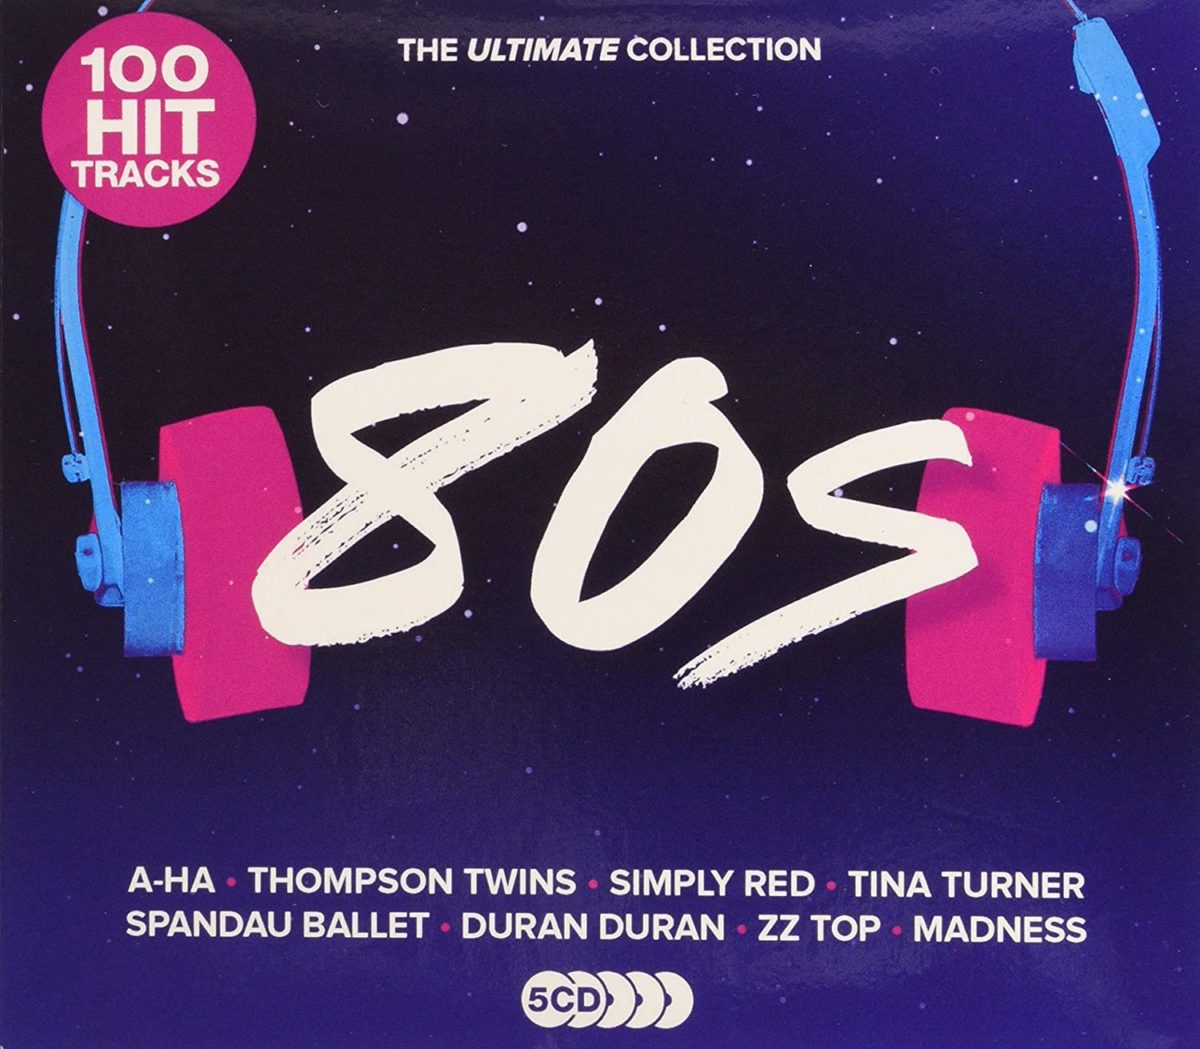 100 Hit Tracks The Ultimate Collection 80s (2020) CD 5